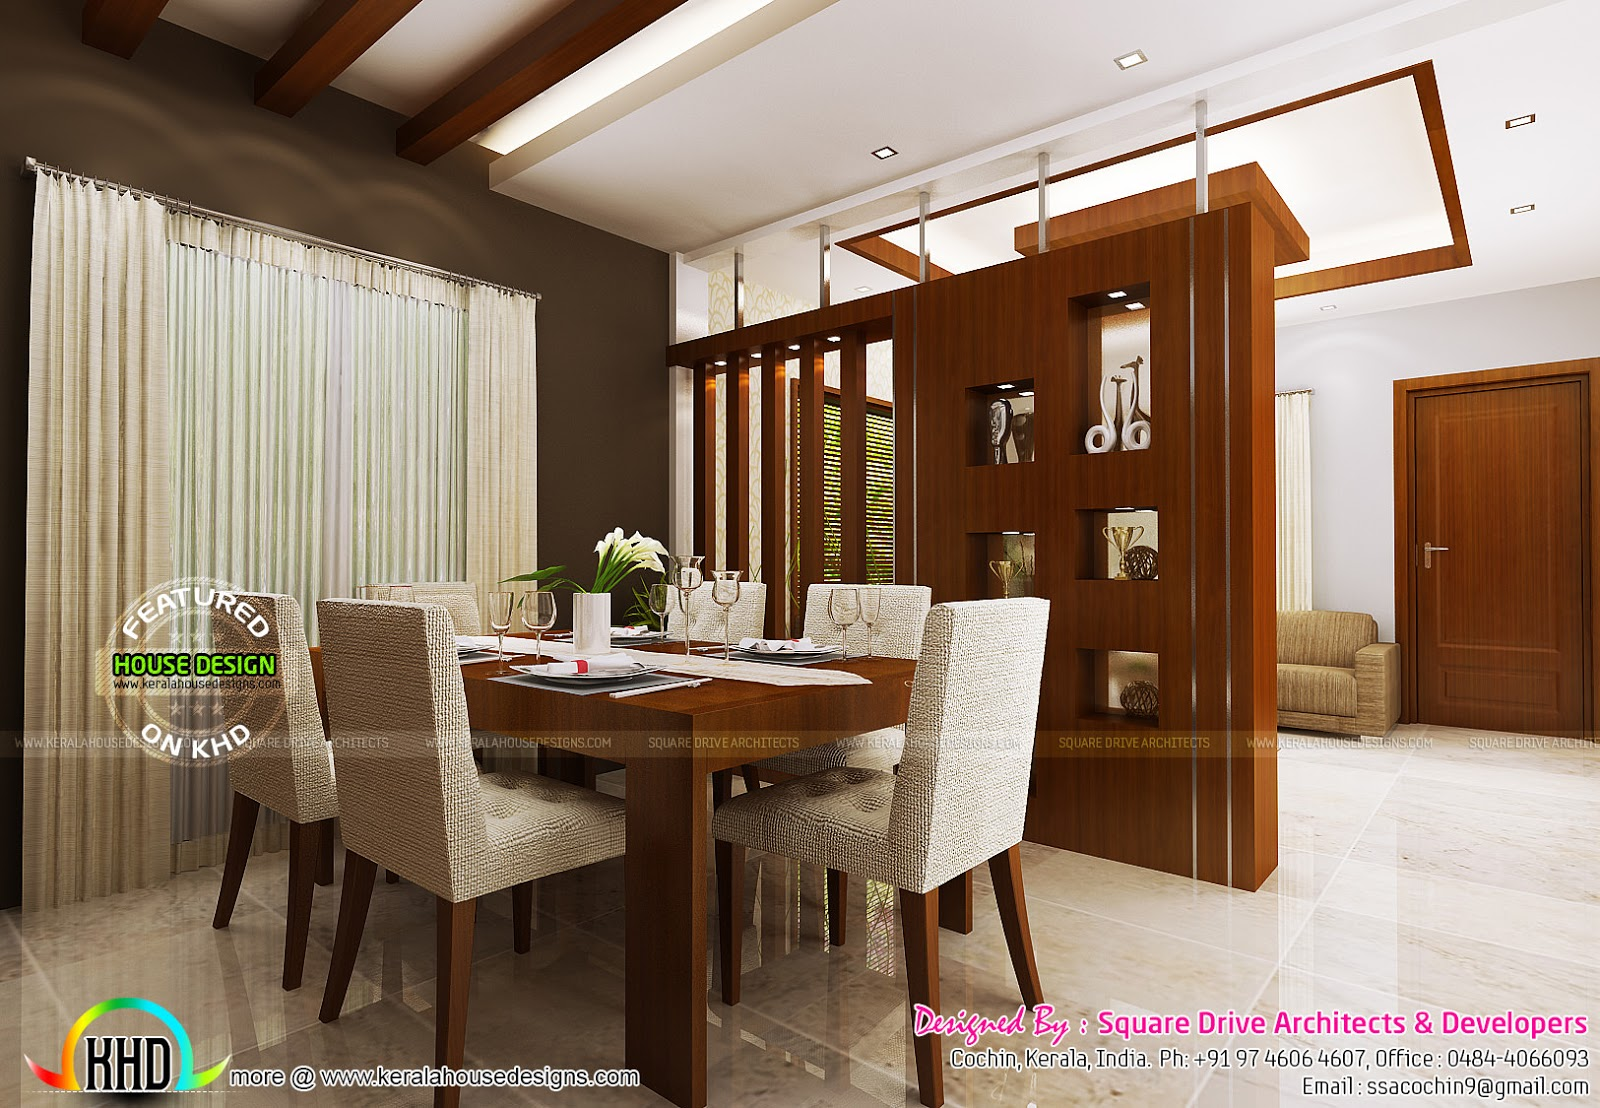 Bedroom living and dining interiors kerala home design for Kerala home interior